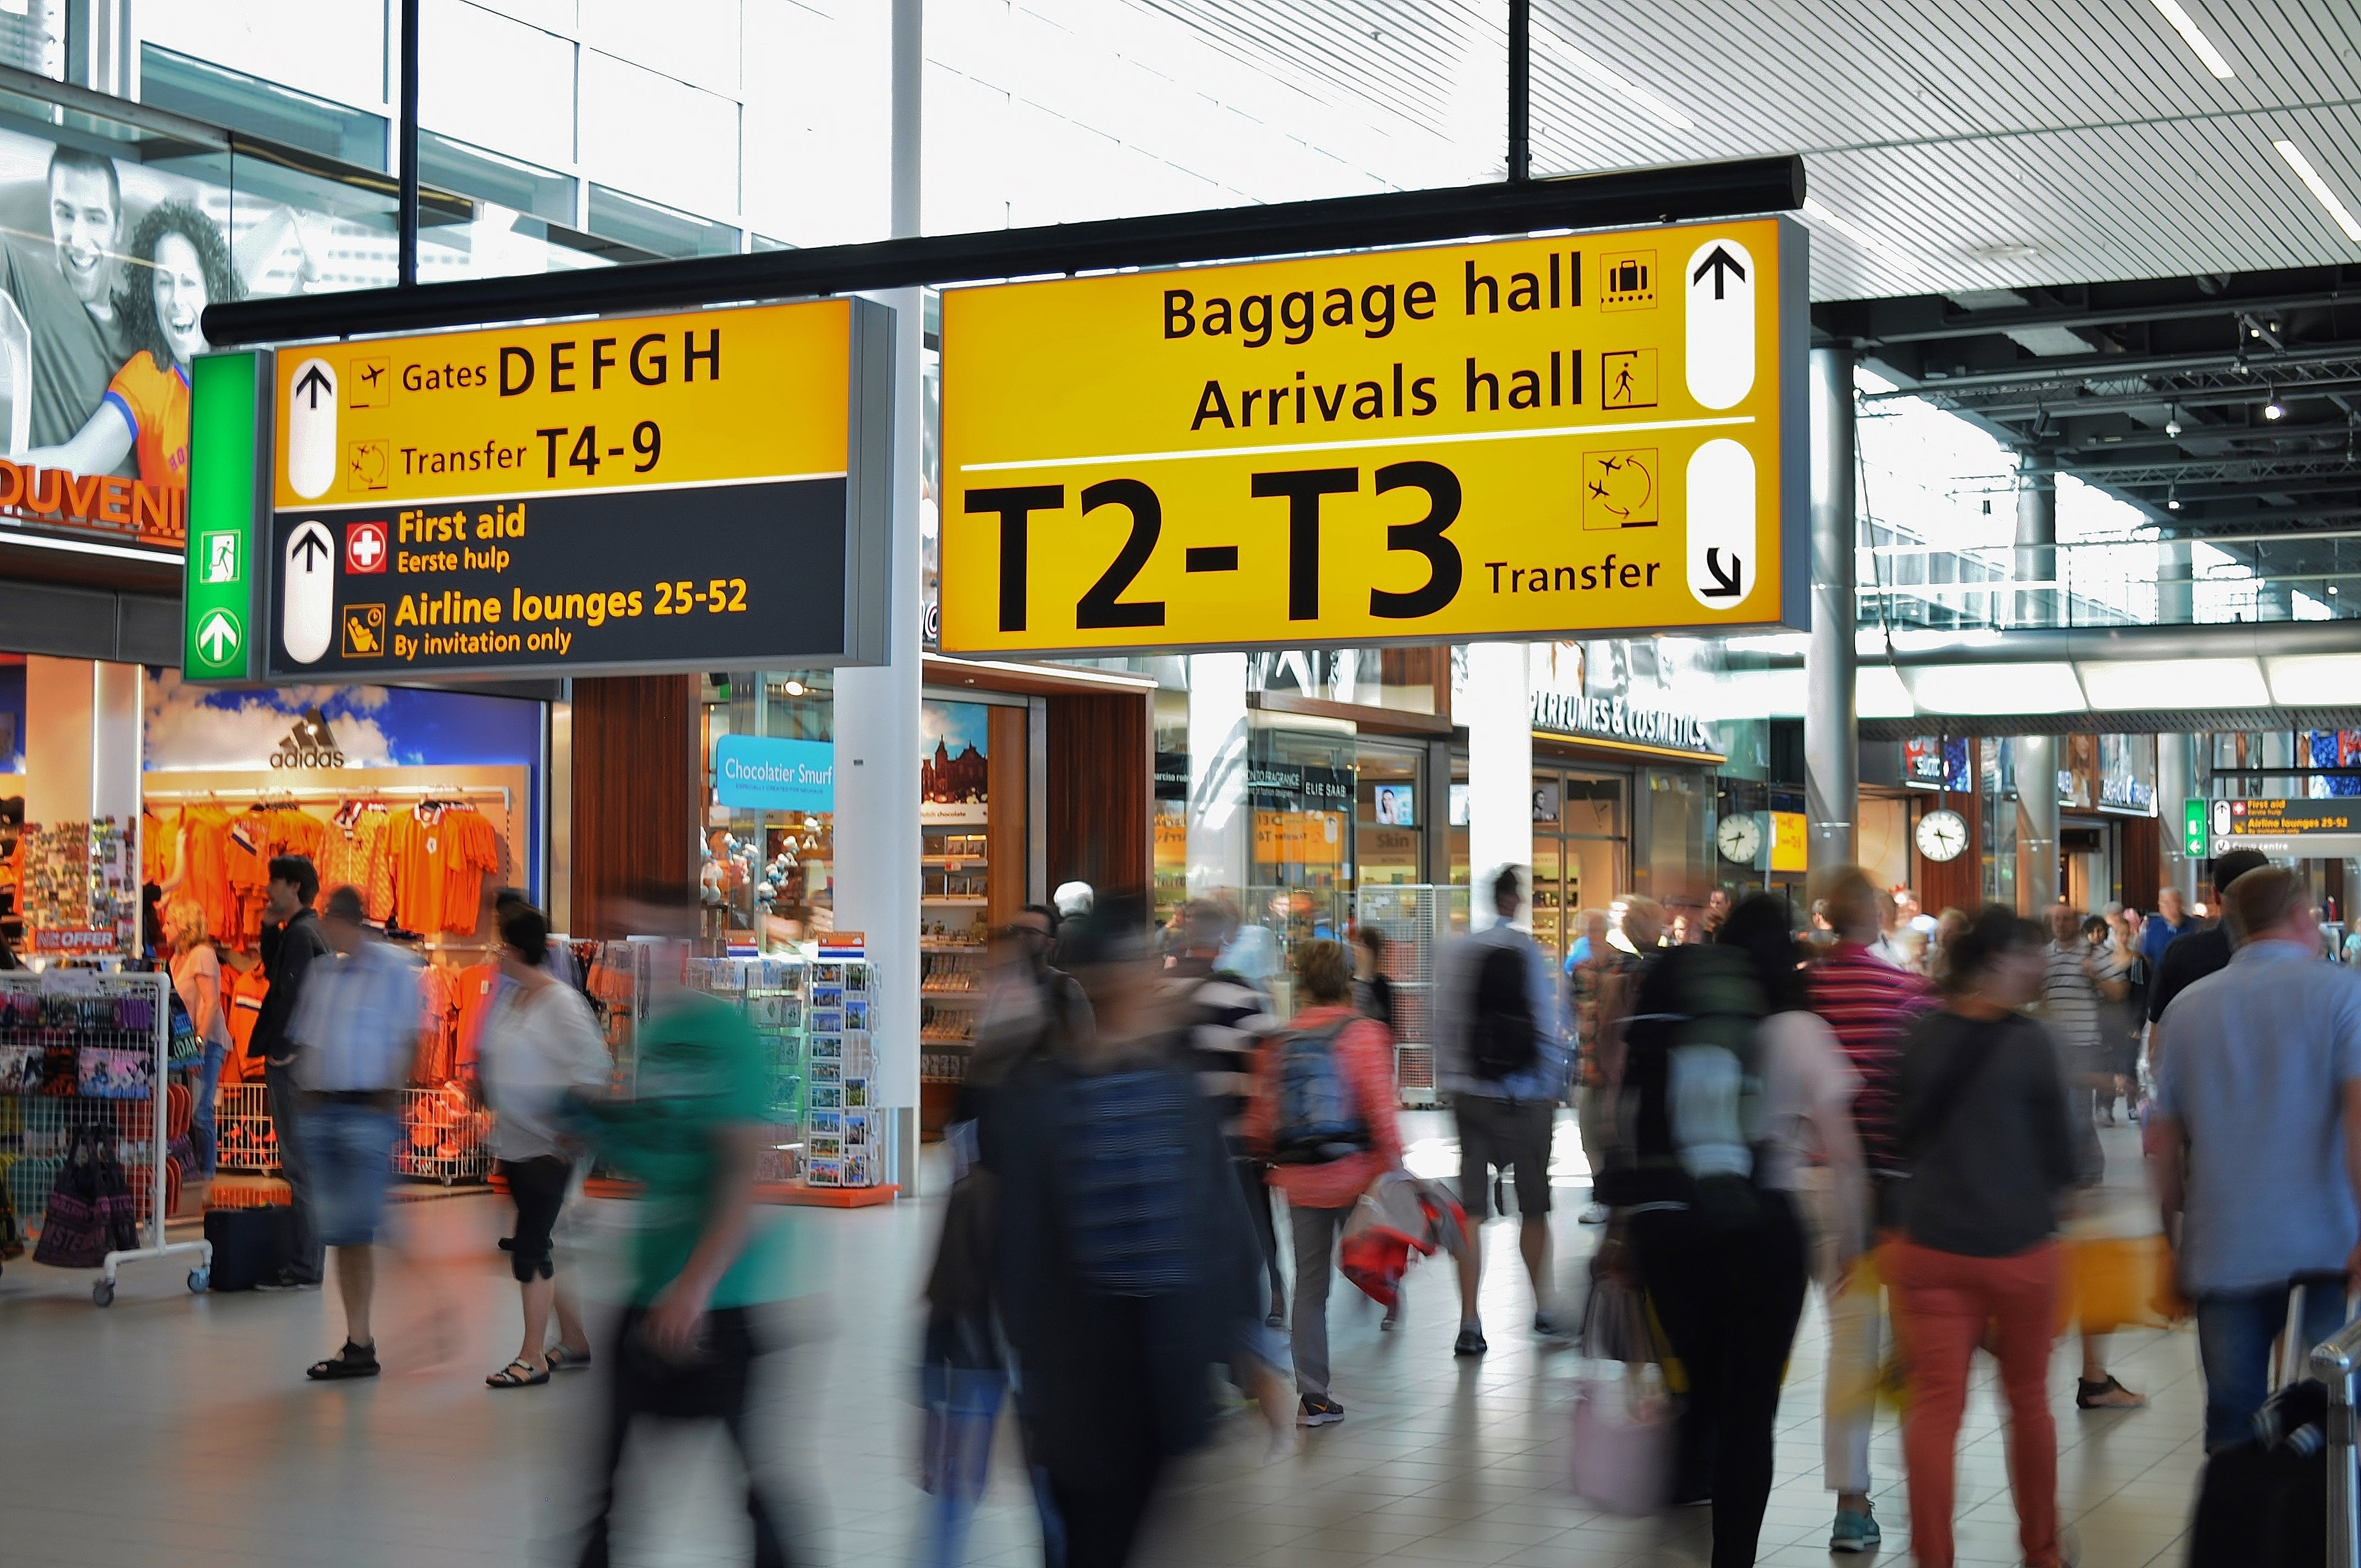 People Walking Beside Baggage Hall and Arrivals Hall Signage